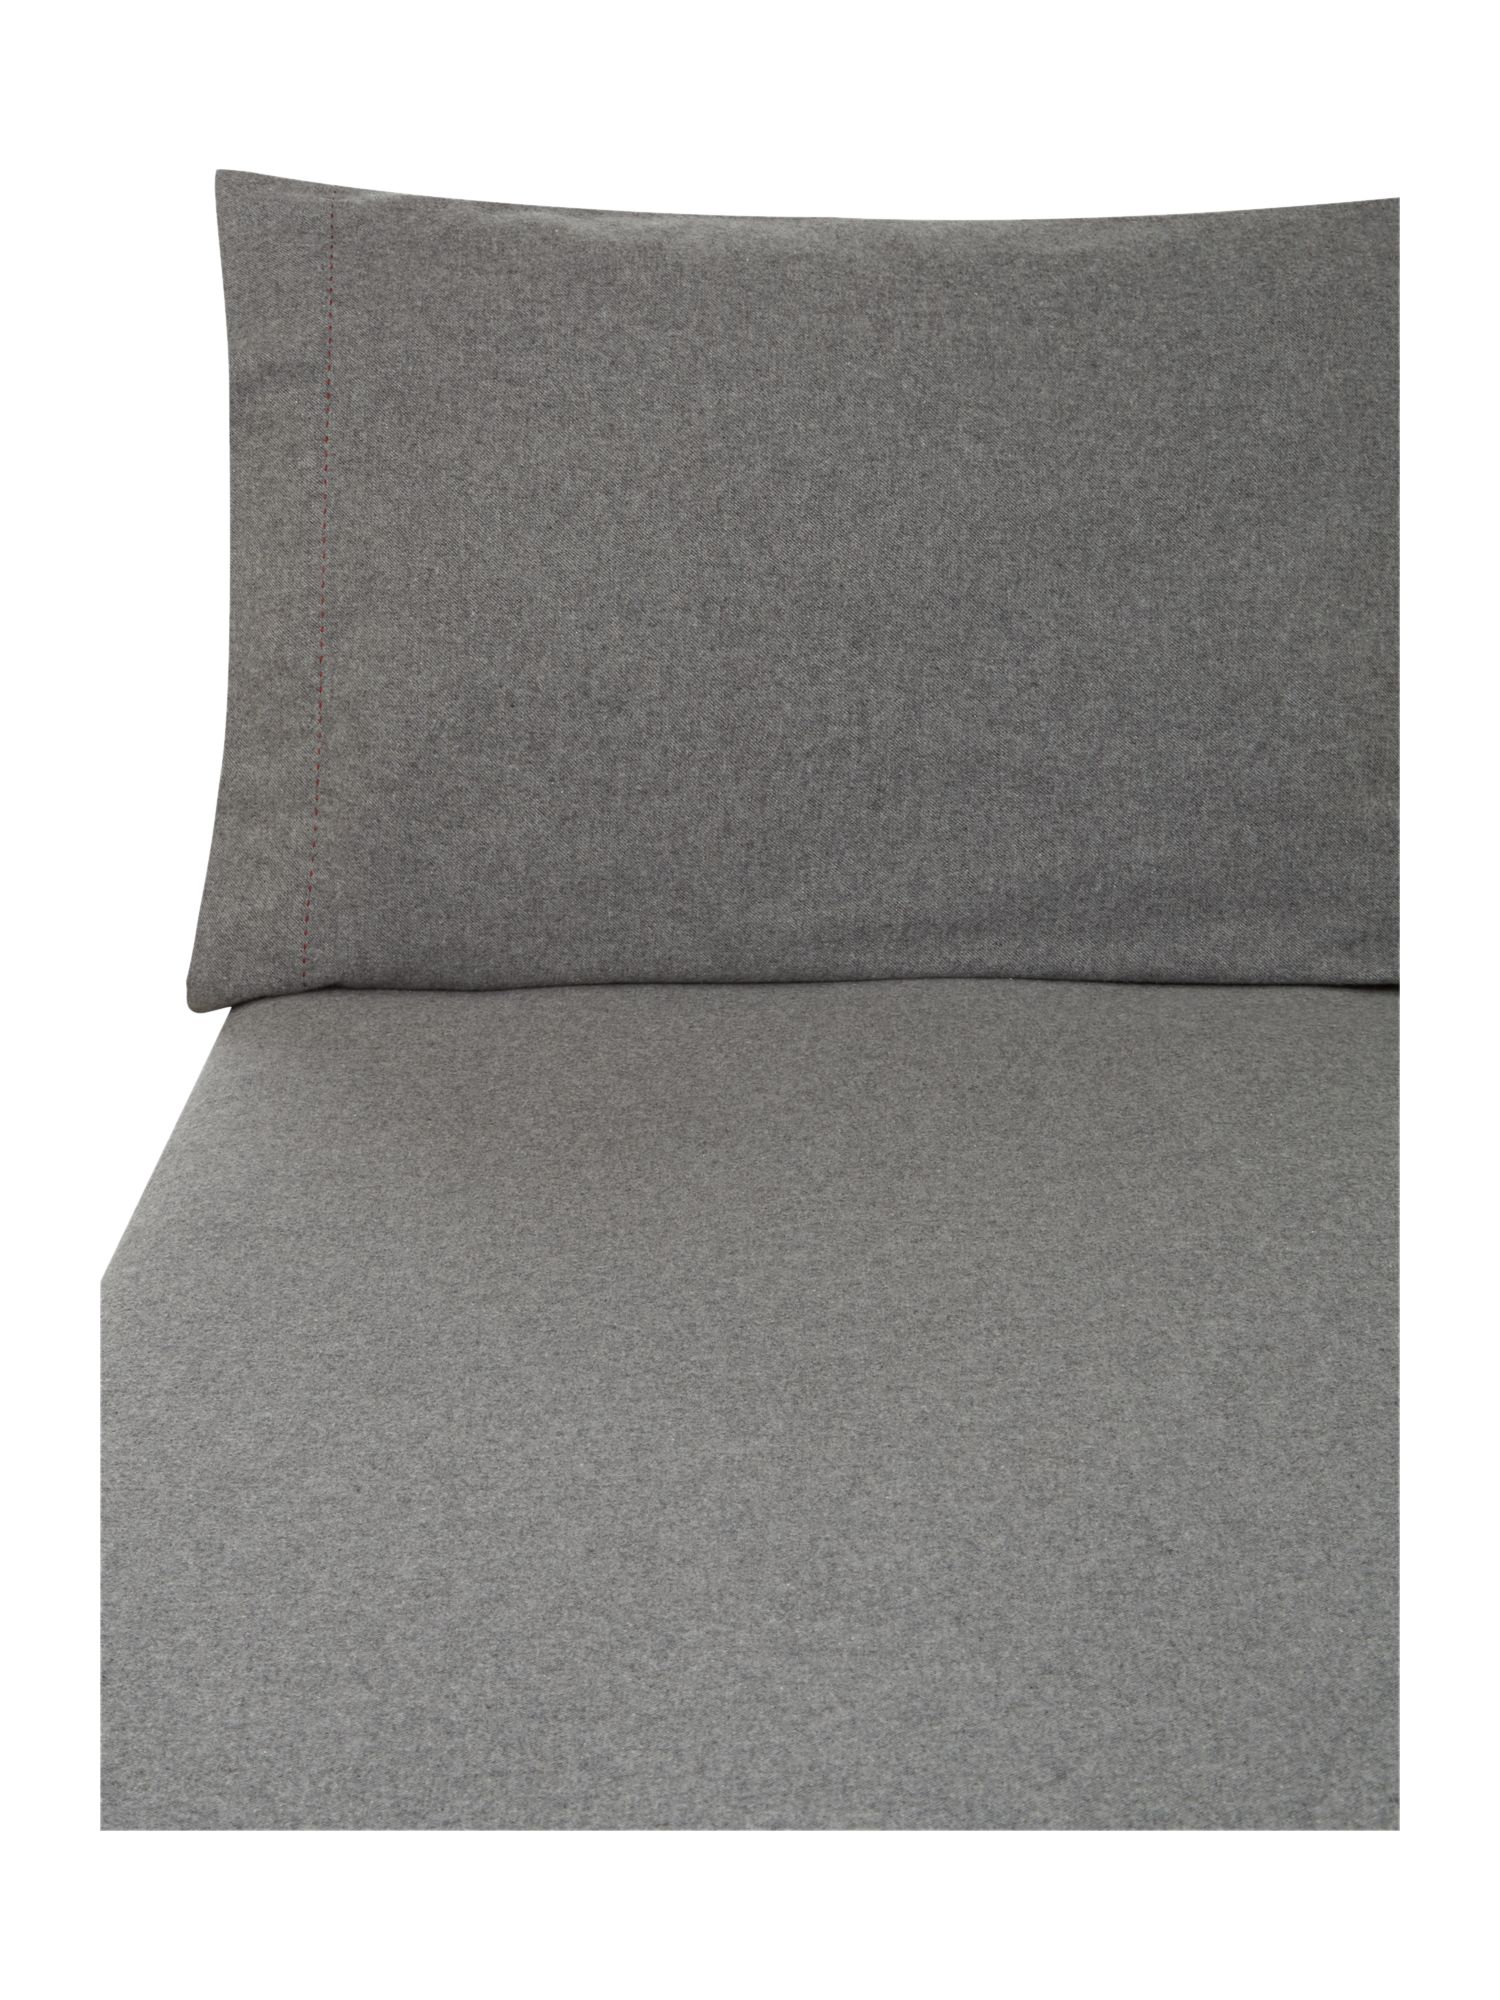 Linea grey flannel bedding range